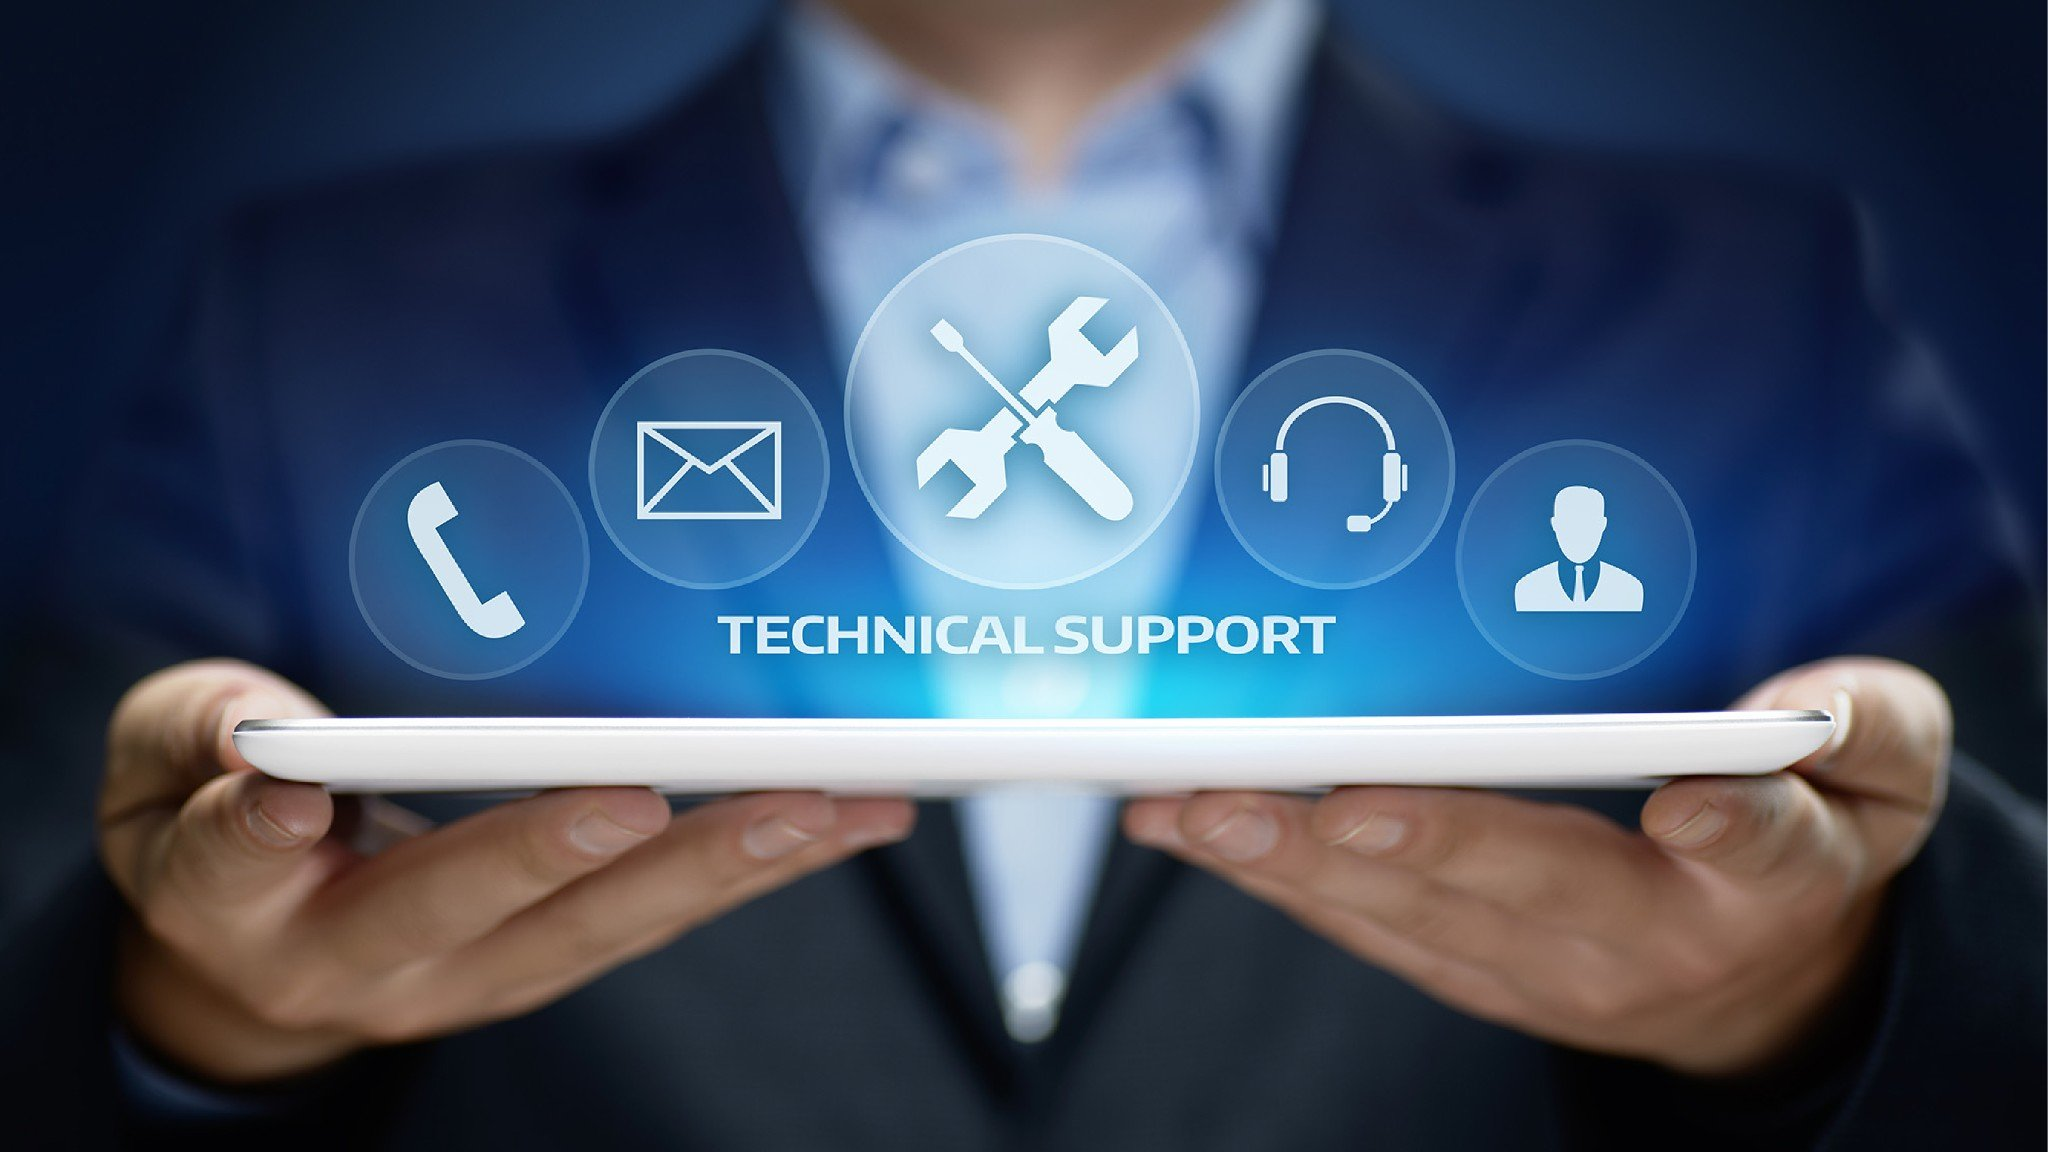 image Technical support